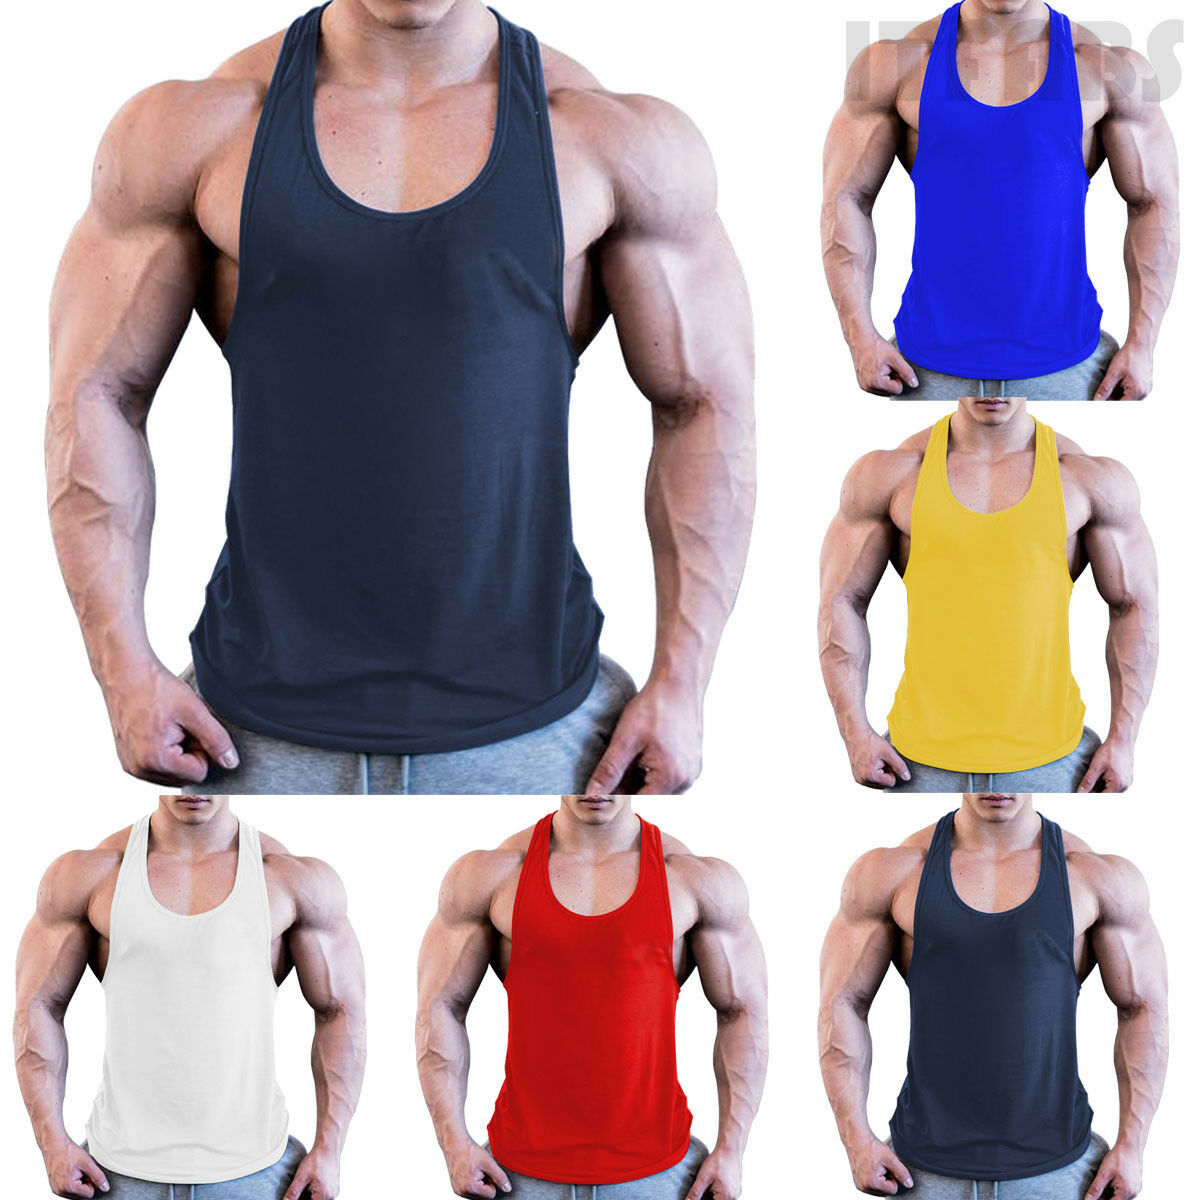 2019 New Style Jogger Men's Gym Singlet Training Bodybuilding   Tank     Top   Vest Shirt Sleeveless Fitness Cotton Shirt For Men